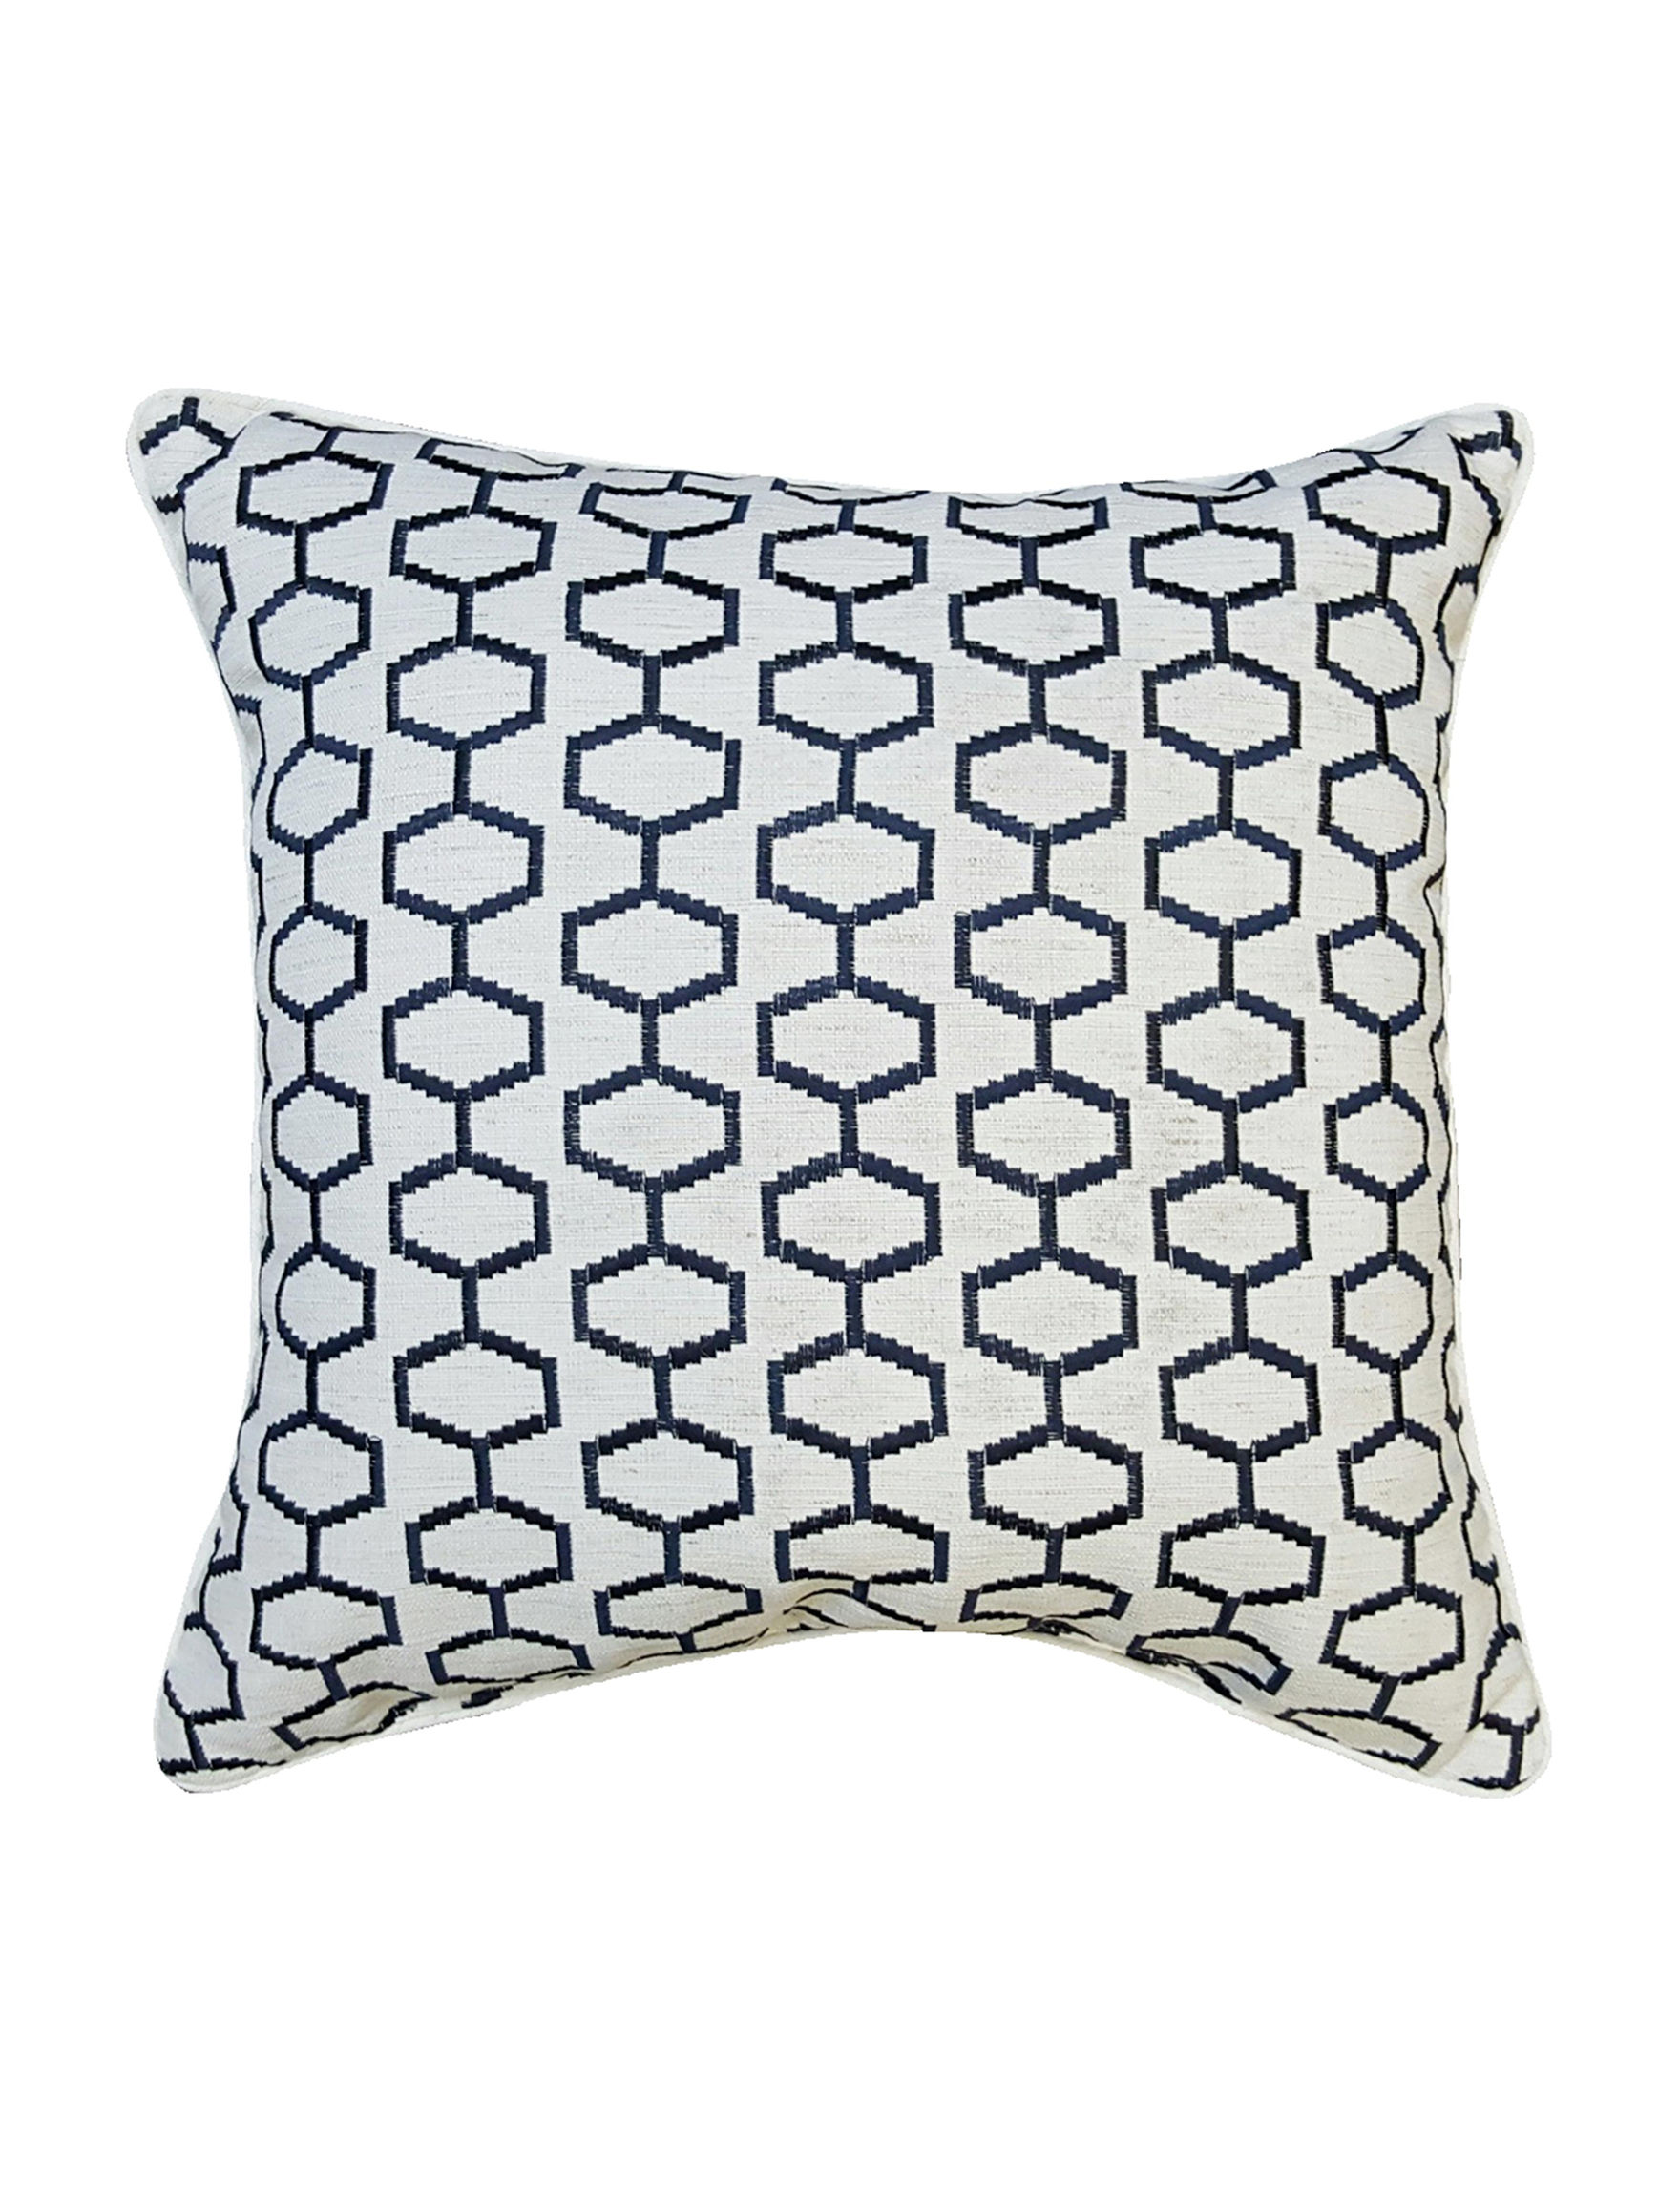 Home Fashions International Navy Decorative Pillows